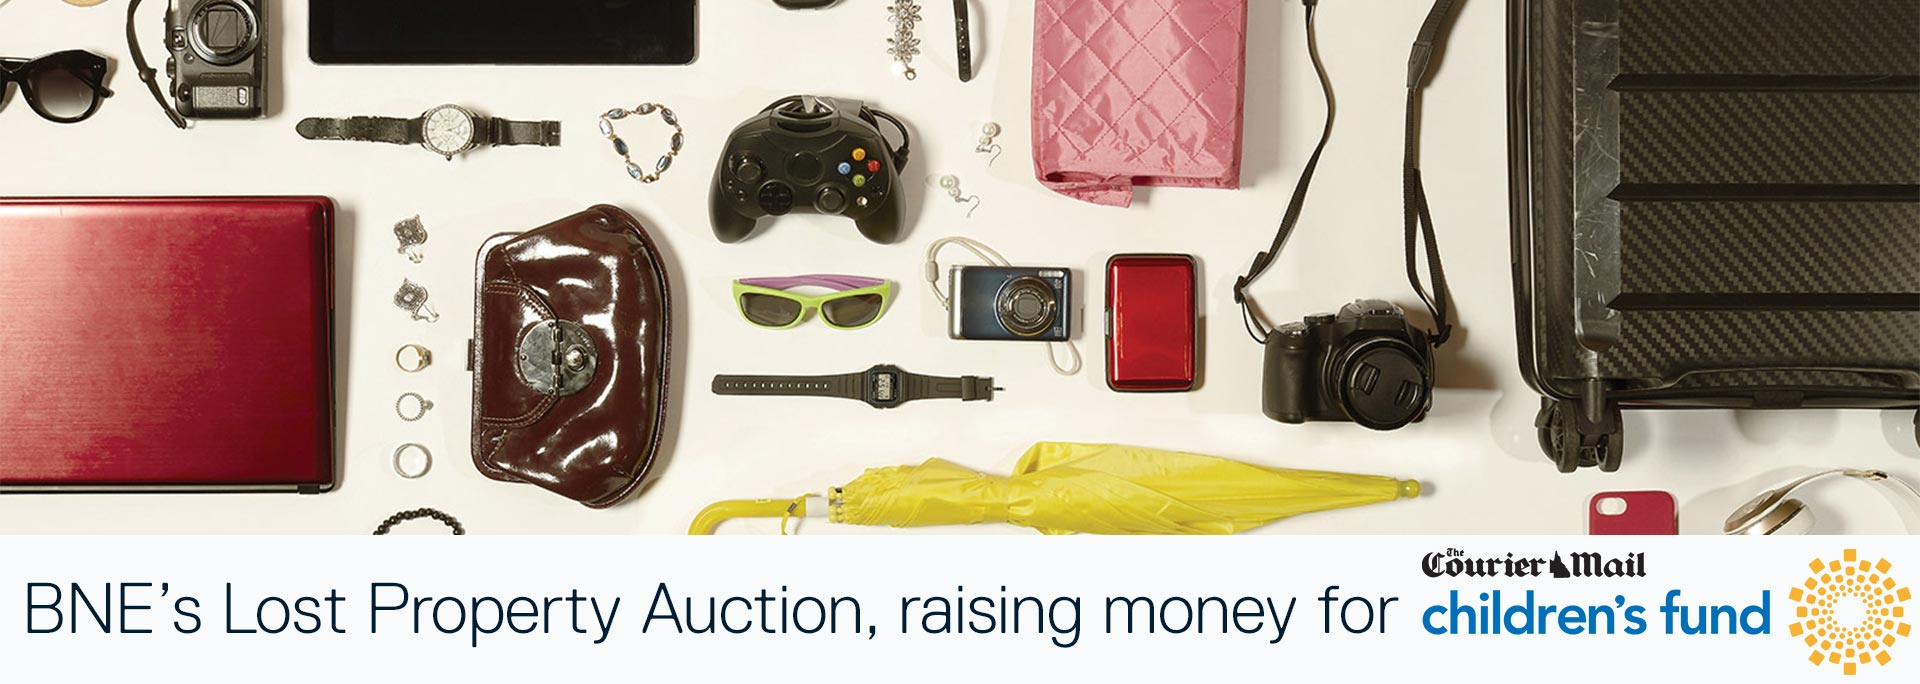 Brisbane Airport's Lost Property Auction 2021